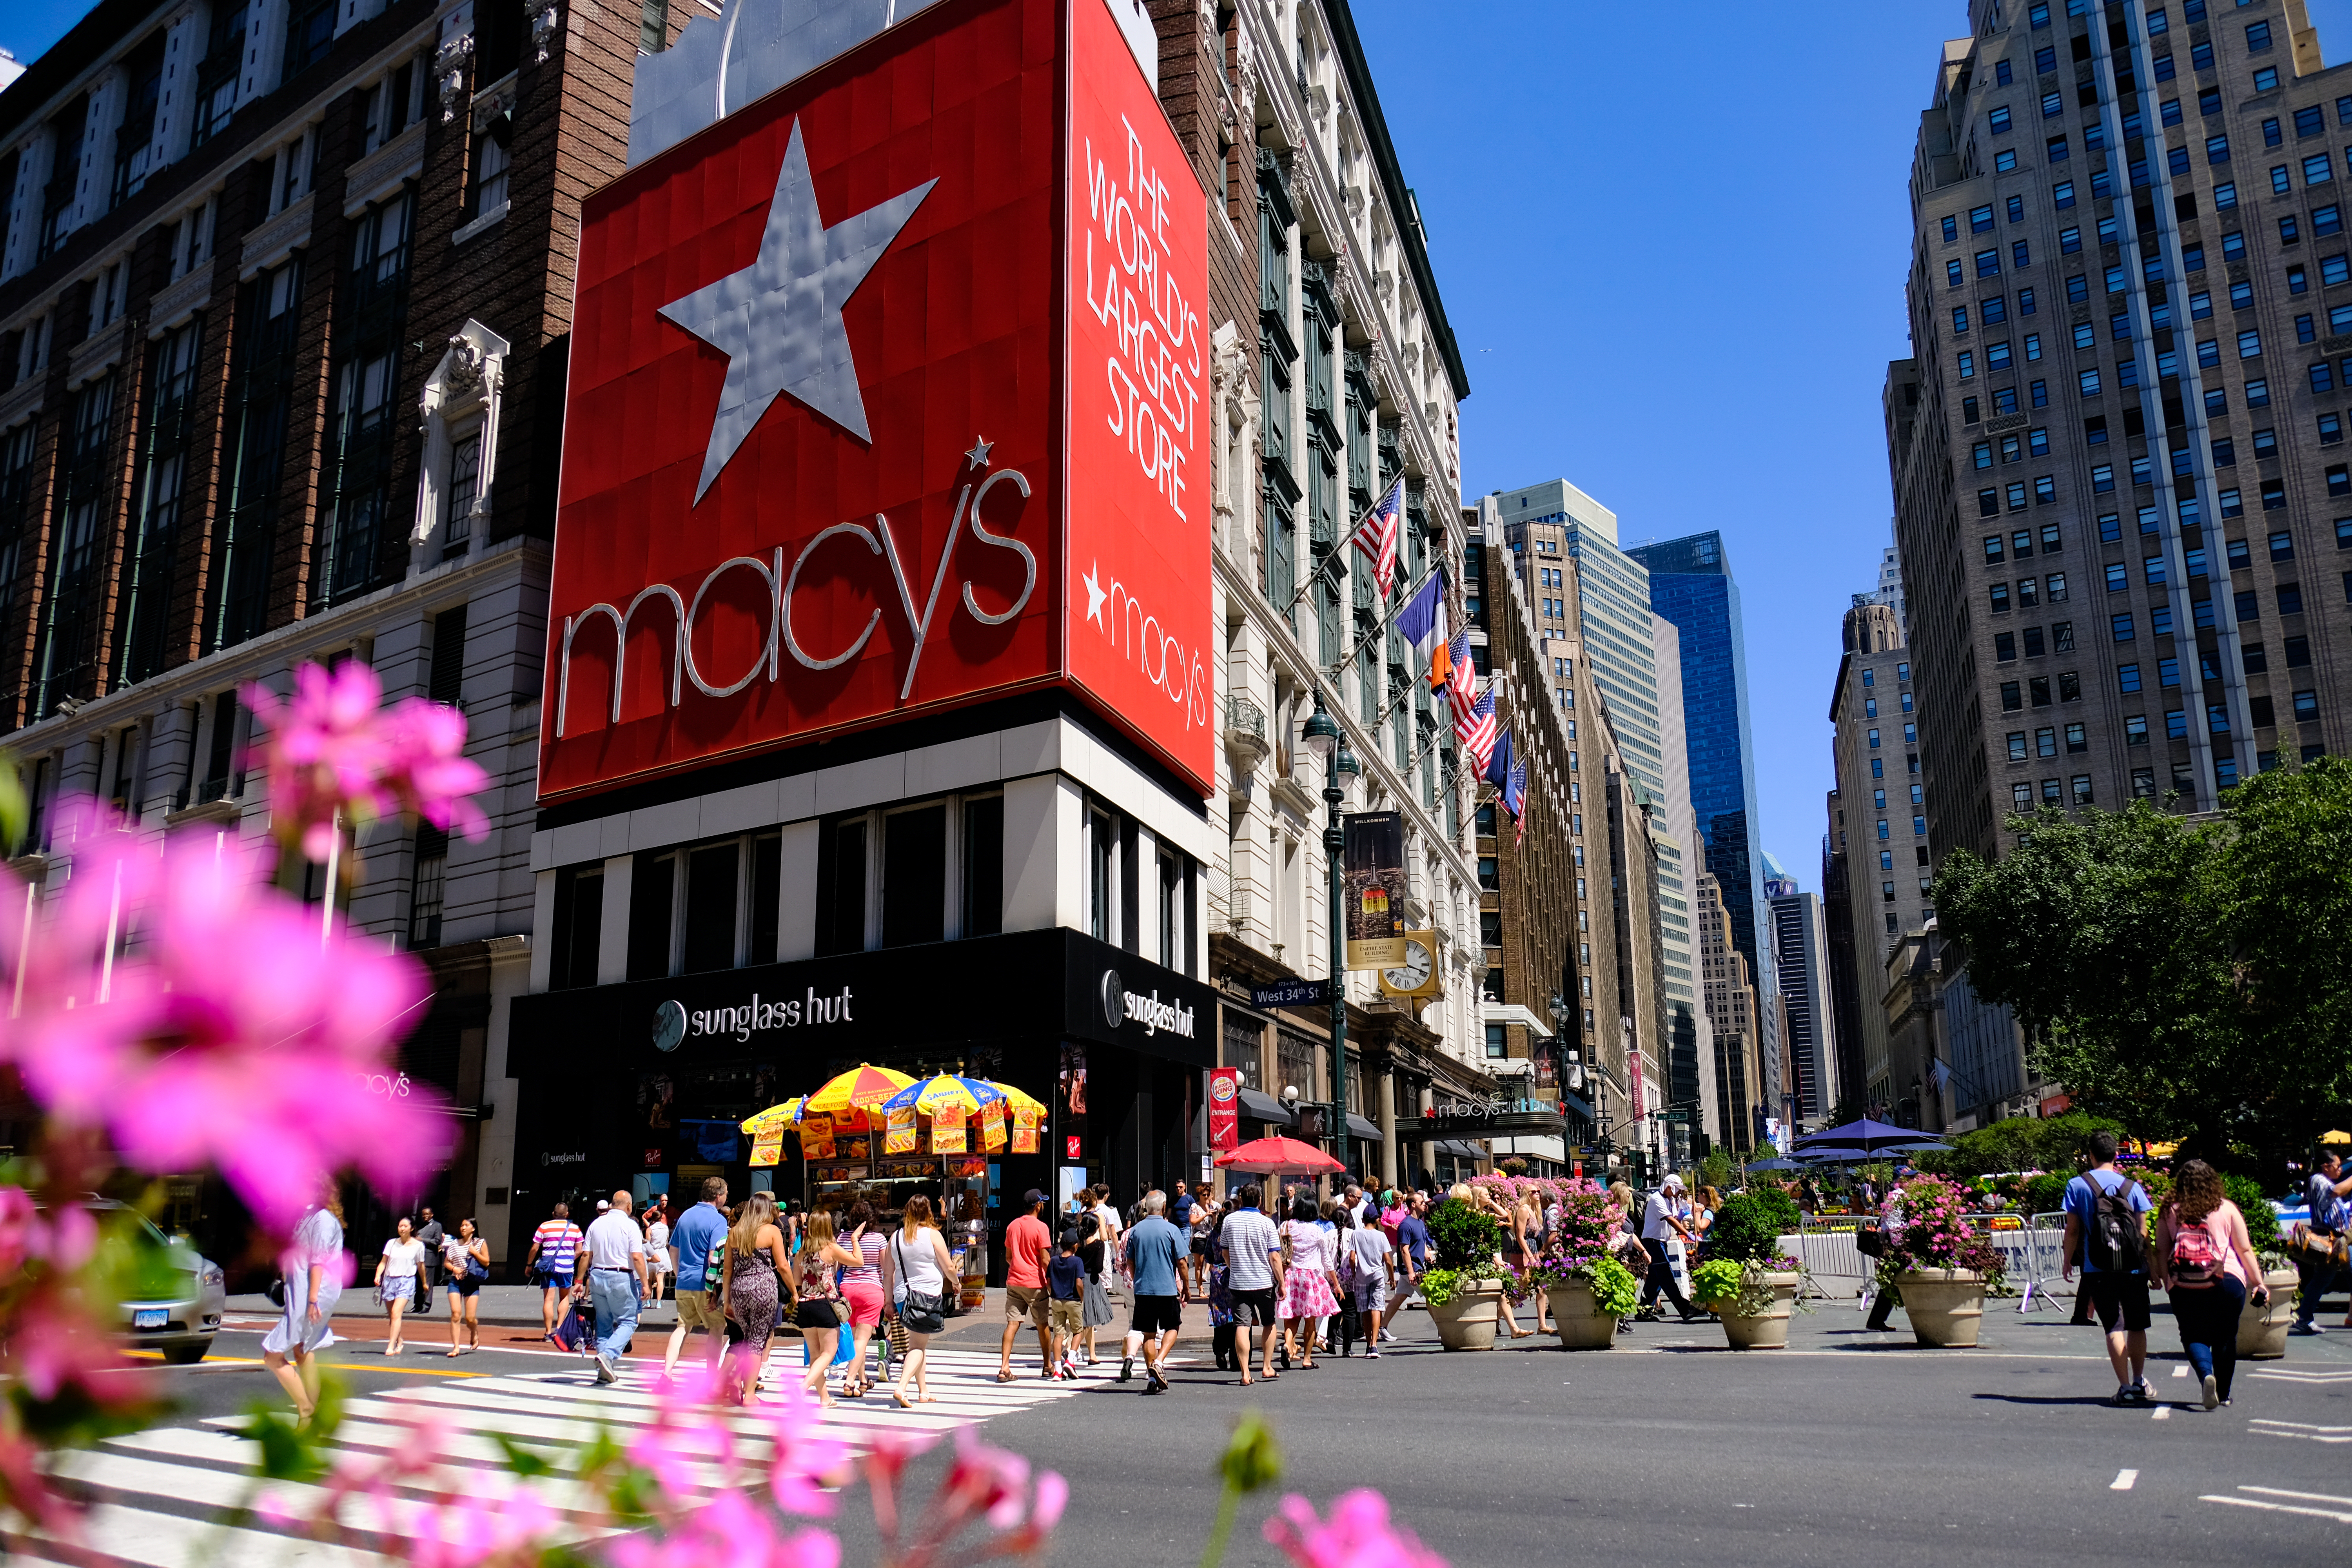 Macy's Herald Square Flagship Department Store in Midtown Manhattan with people crossing the street in front of it